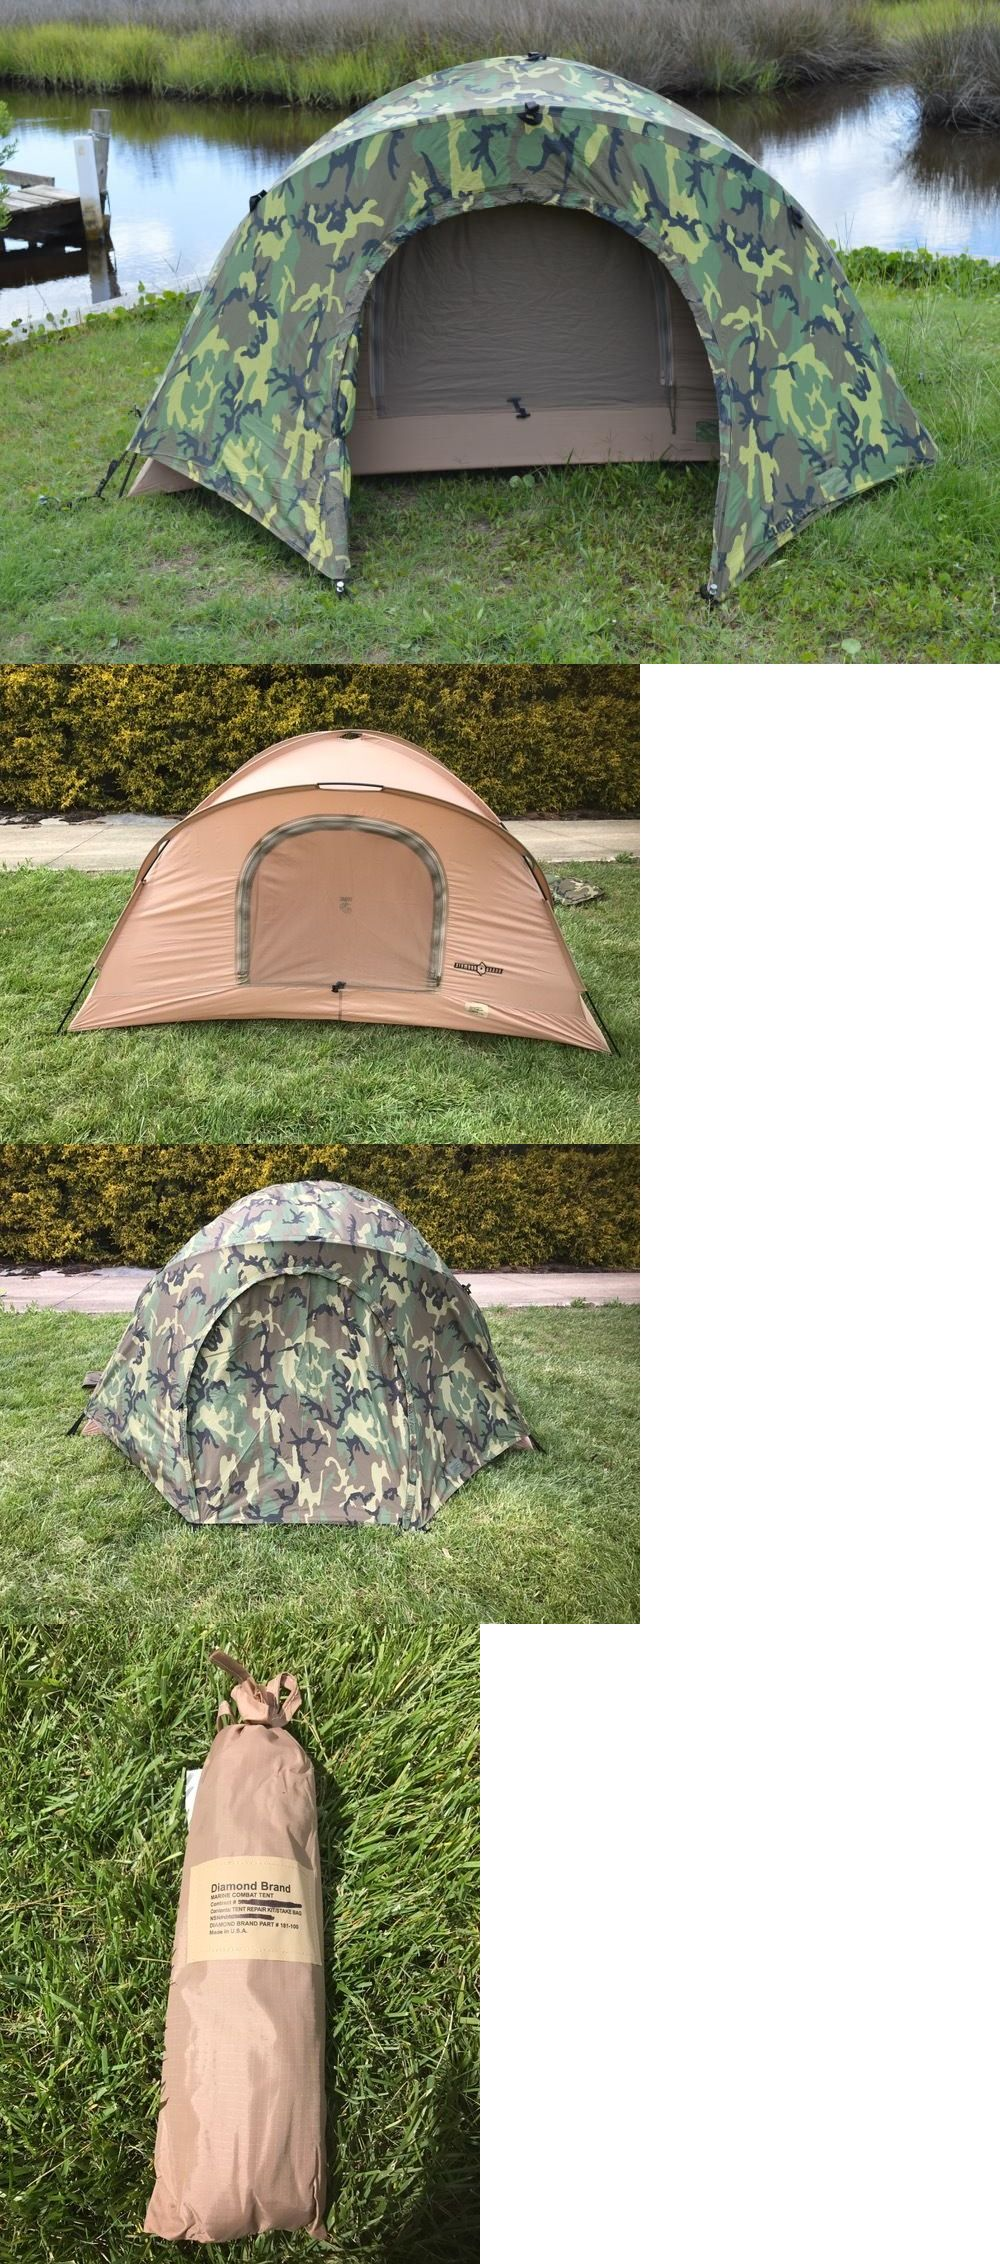 Tents 179010 Usmc 2-Man Combat Tent -u003e BUY IT NOW ONLY  sc 1 st  Pinterest & Tents 179010: Usmc 2-Man Combat Tent -u003e BUY IT NOW ONLY: $299 on ...